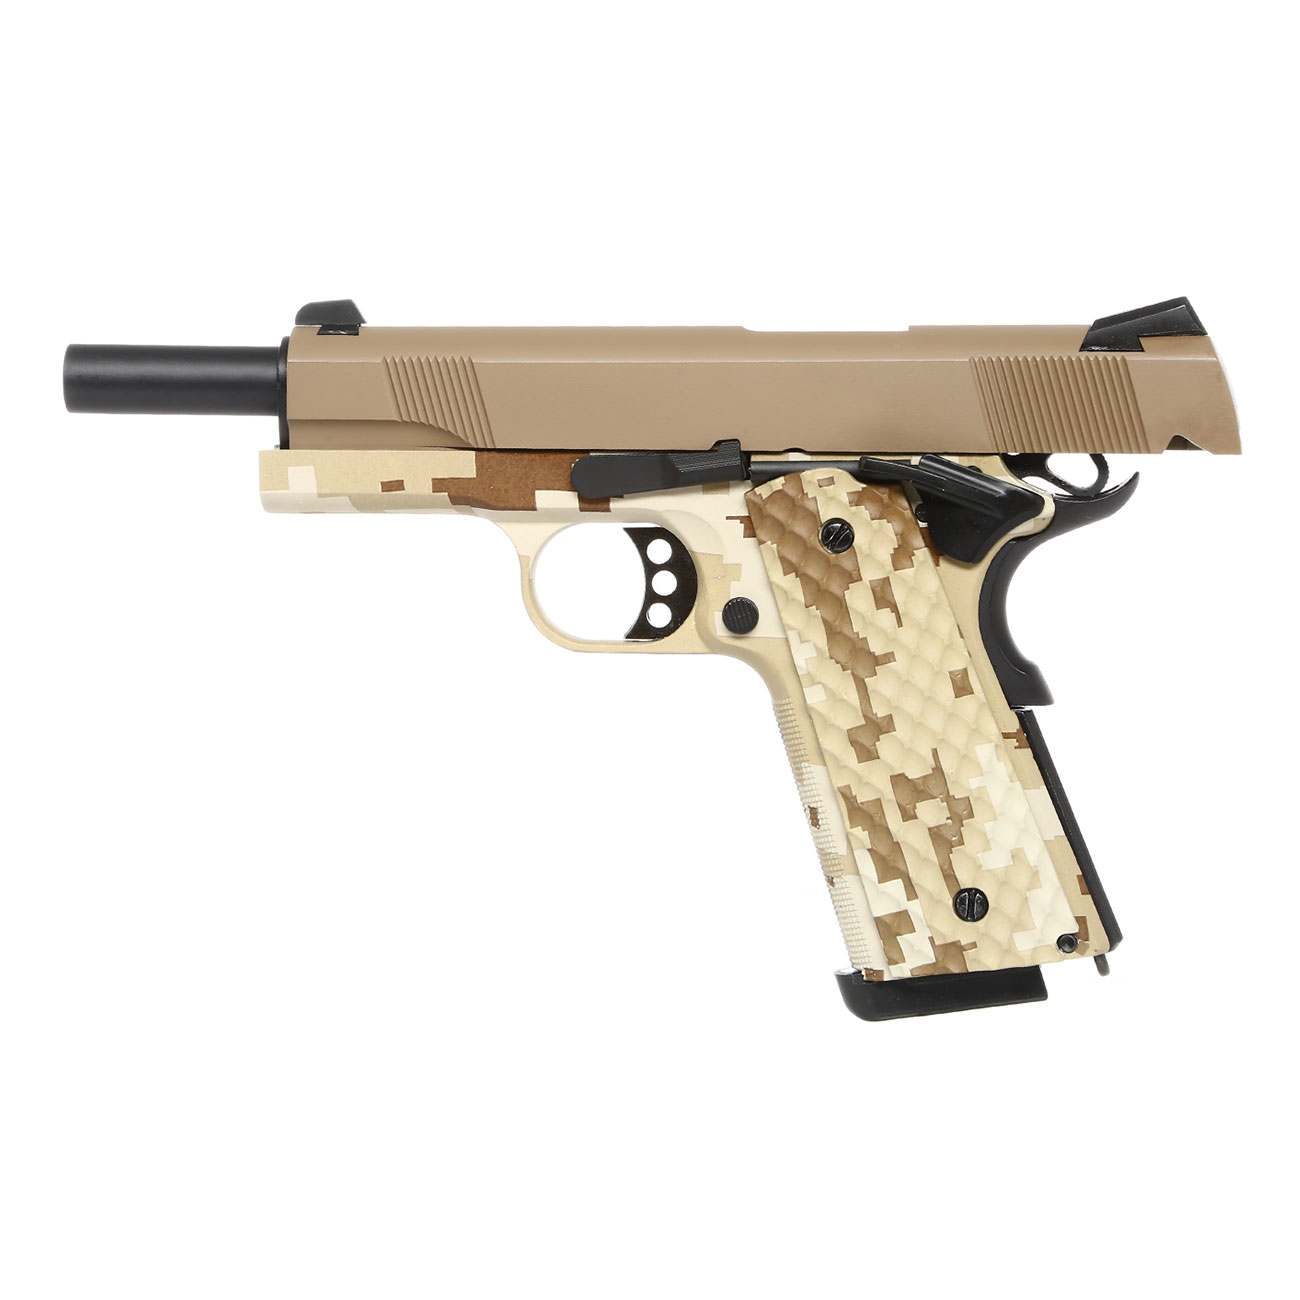 Nuprol Raven M1911 MEU Vollmetall GBB 6mm BB Tan / Digital Desert 2